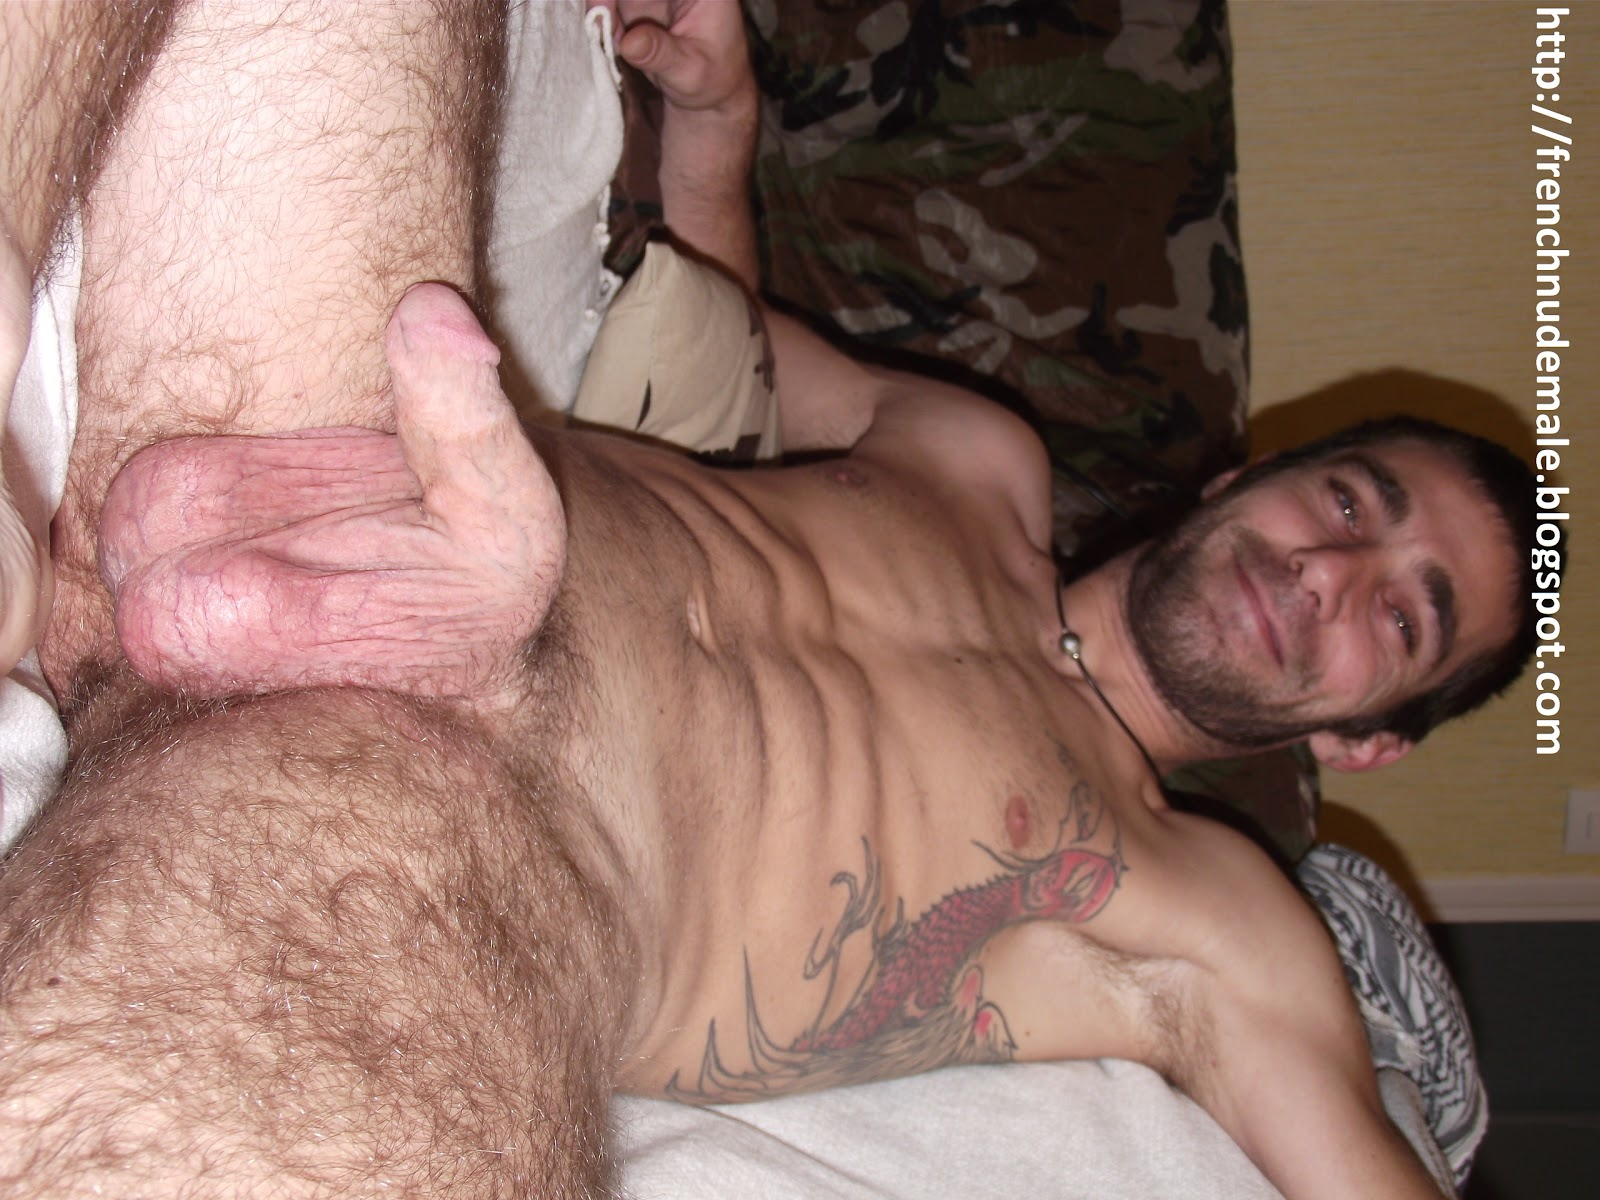 Steven french nude — pic 13